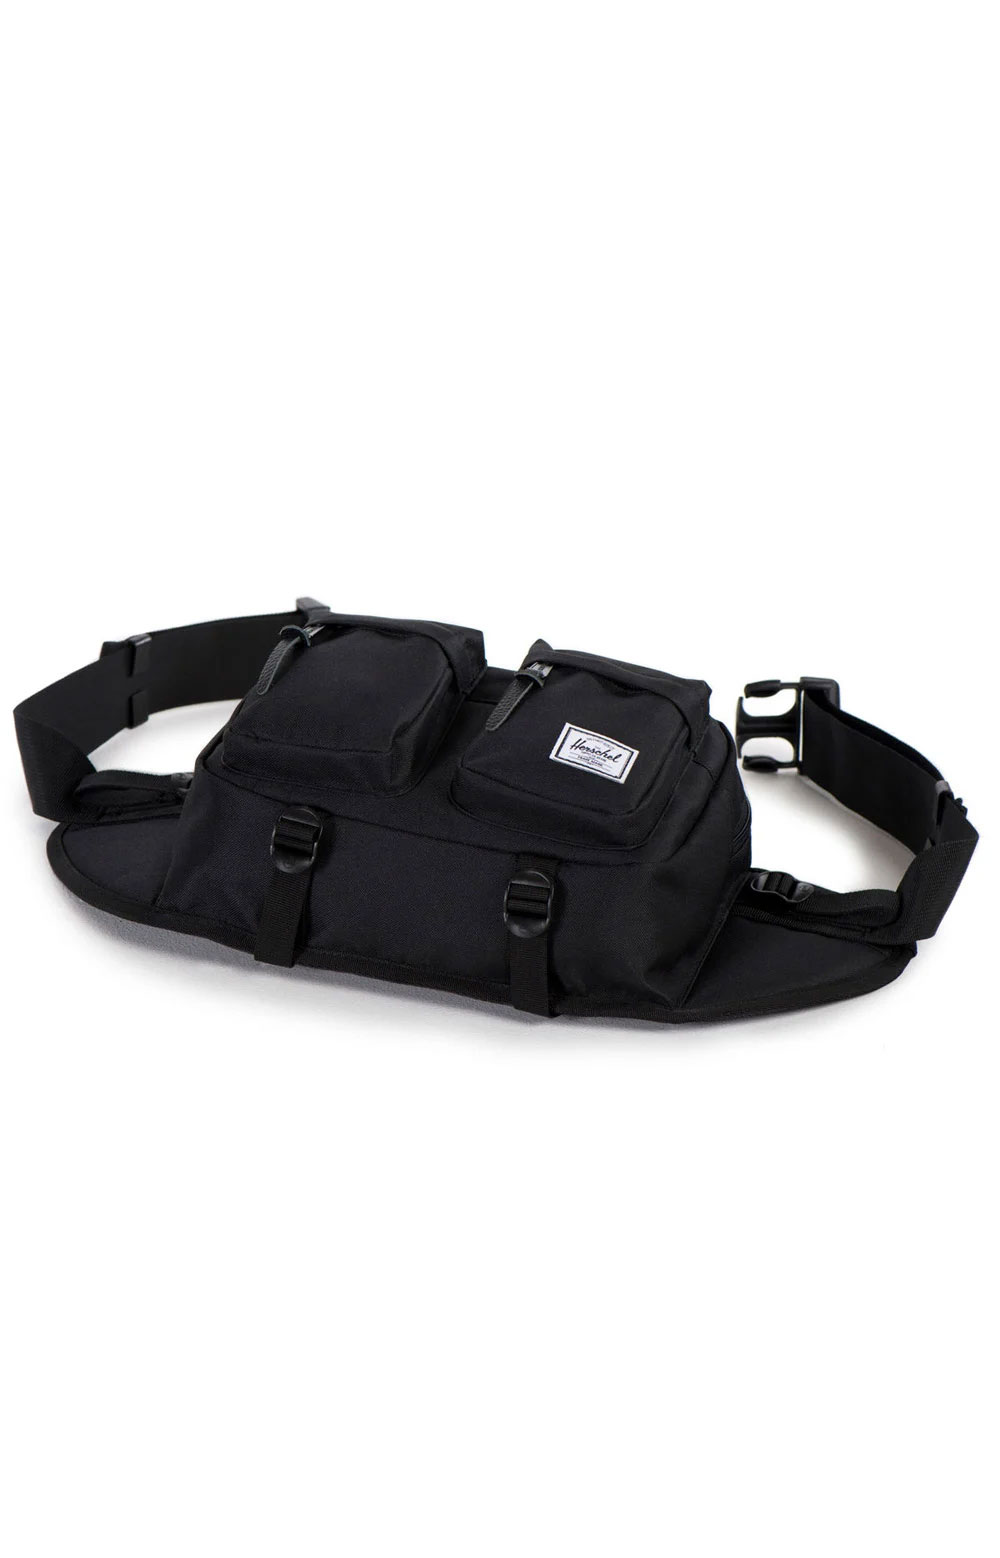 Eighteen Hip Pack - Black 2